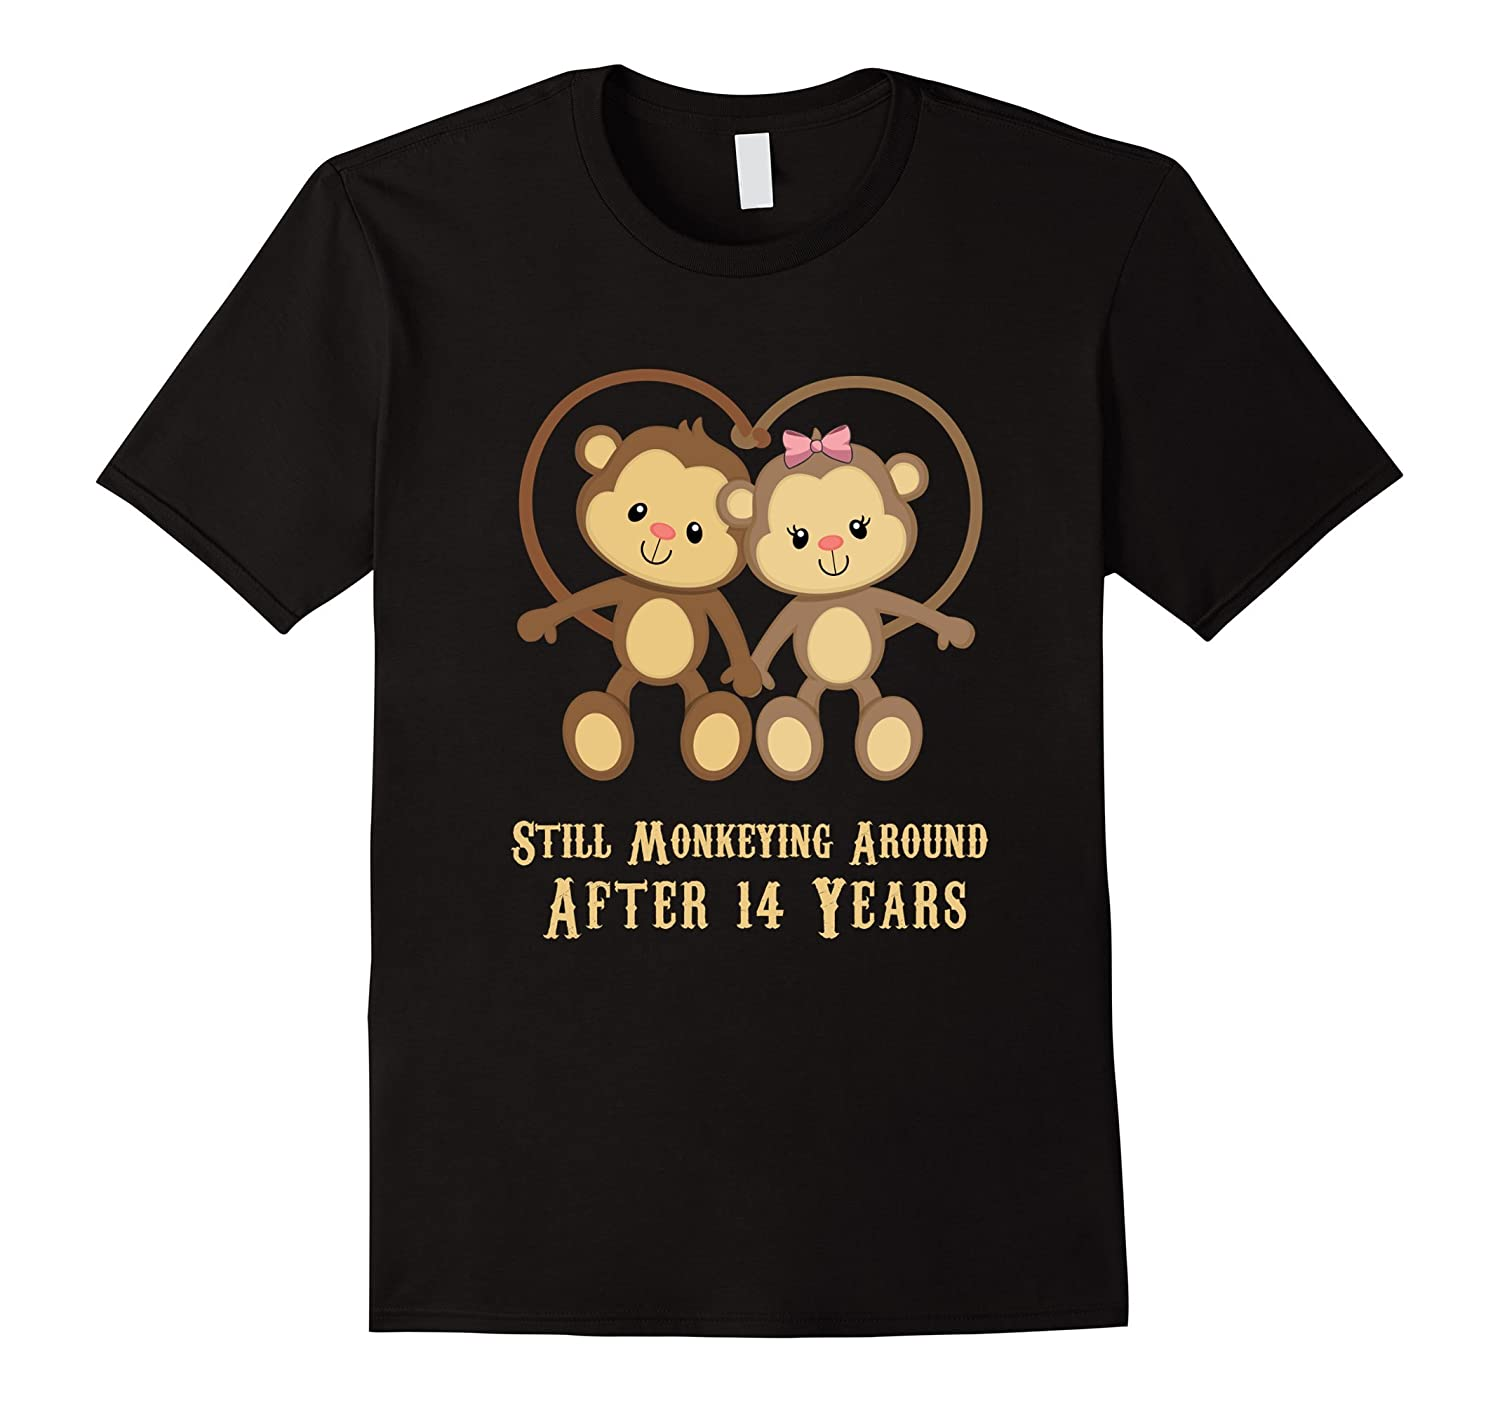 14th Wedding Anniversary T Shirt - 14 Years Vintage Gift-ah my shirt one gift